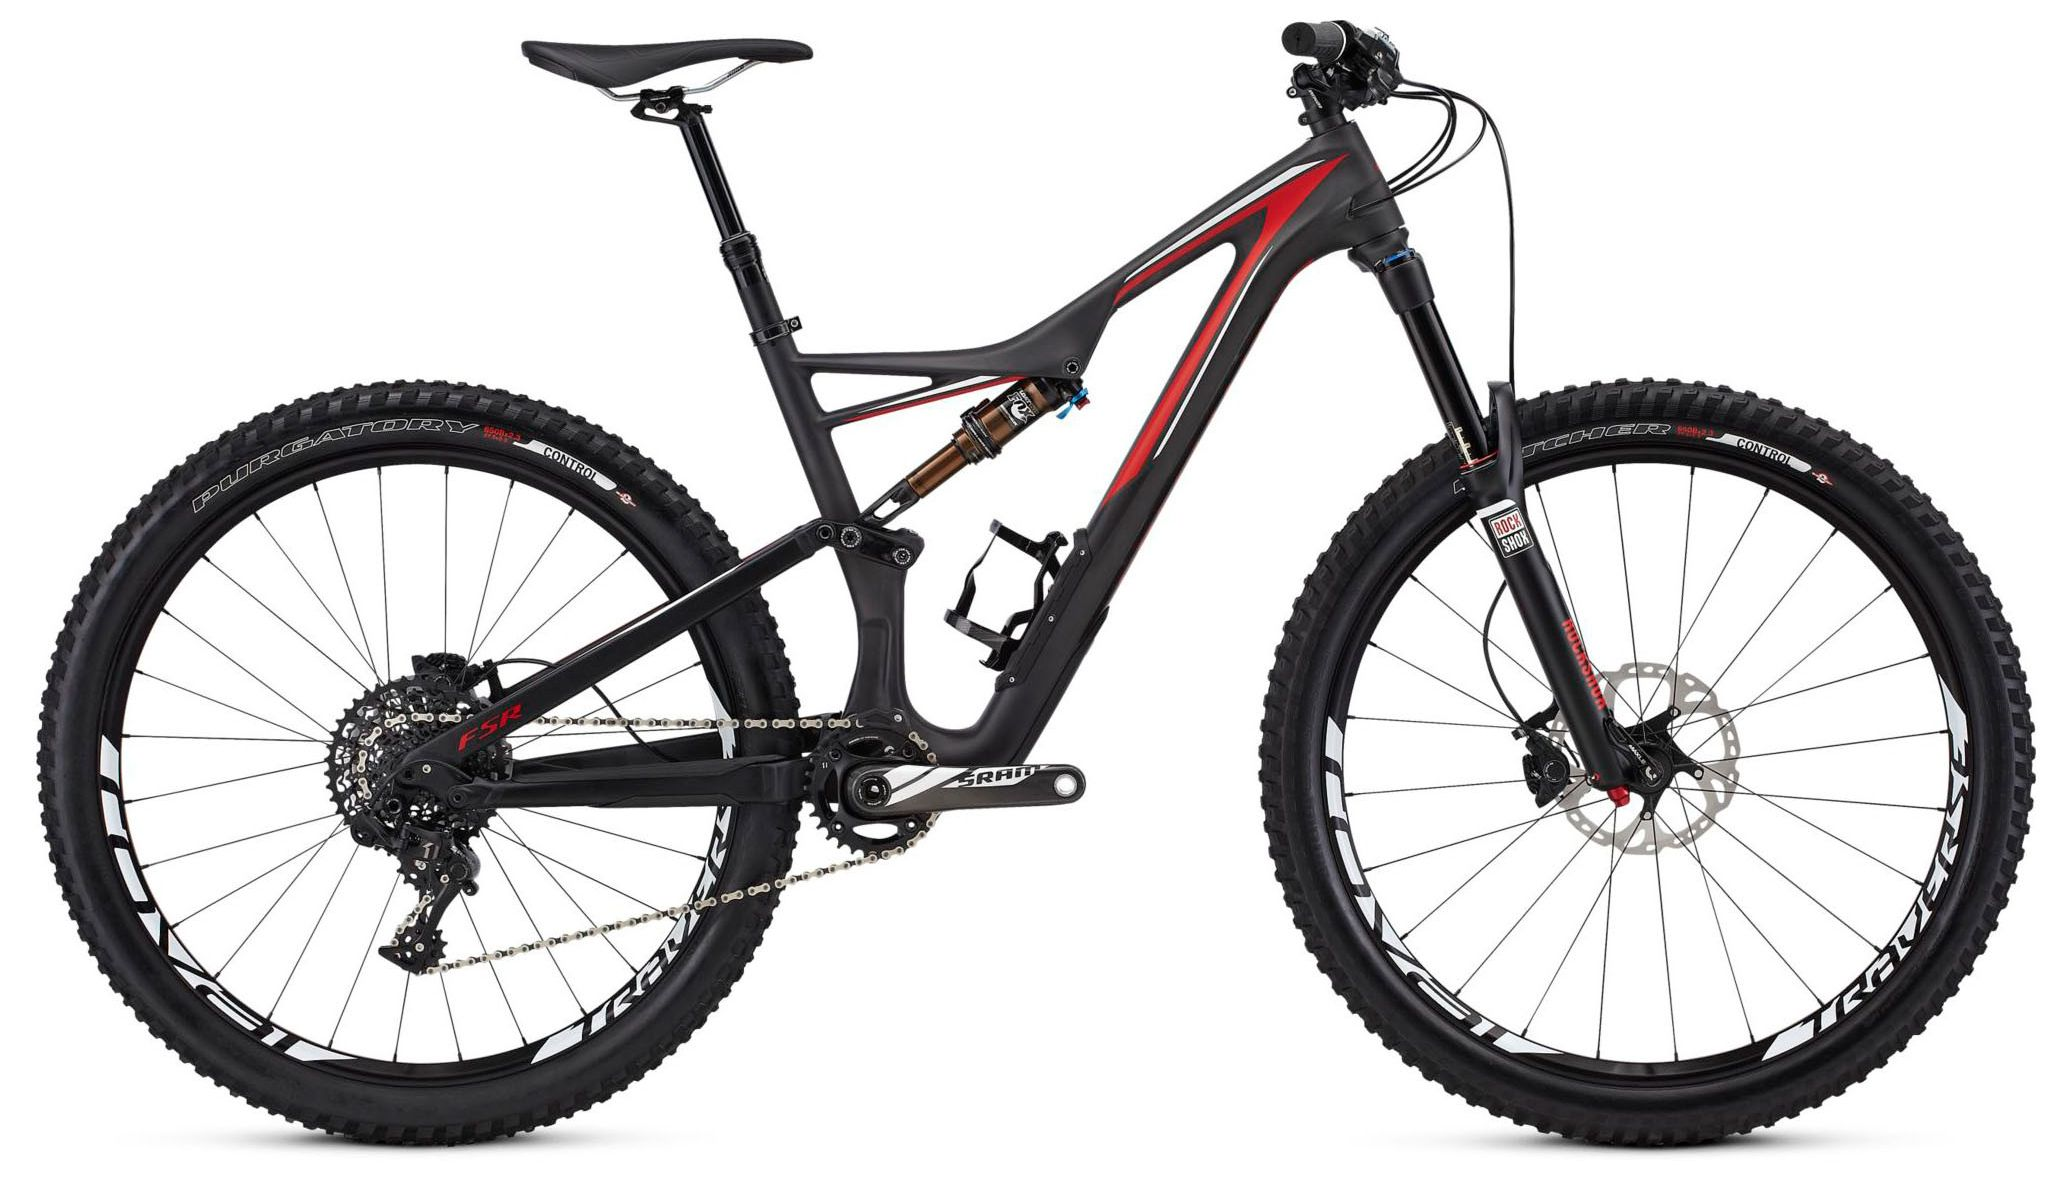 Велосипед Specialized Stumpjumper FSR Expert 650B 2016,  Горные  - артикул:288813